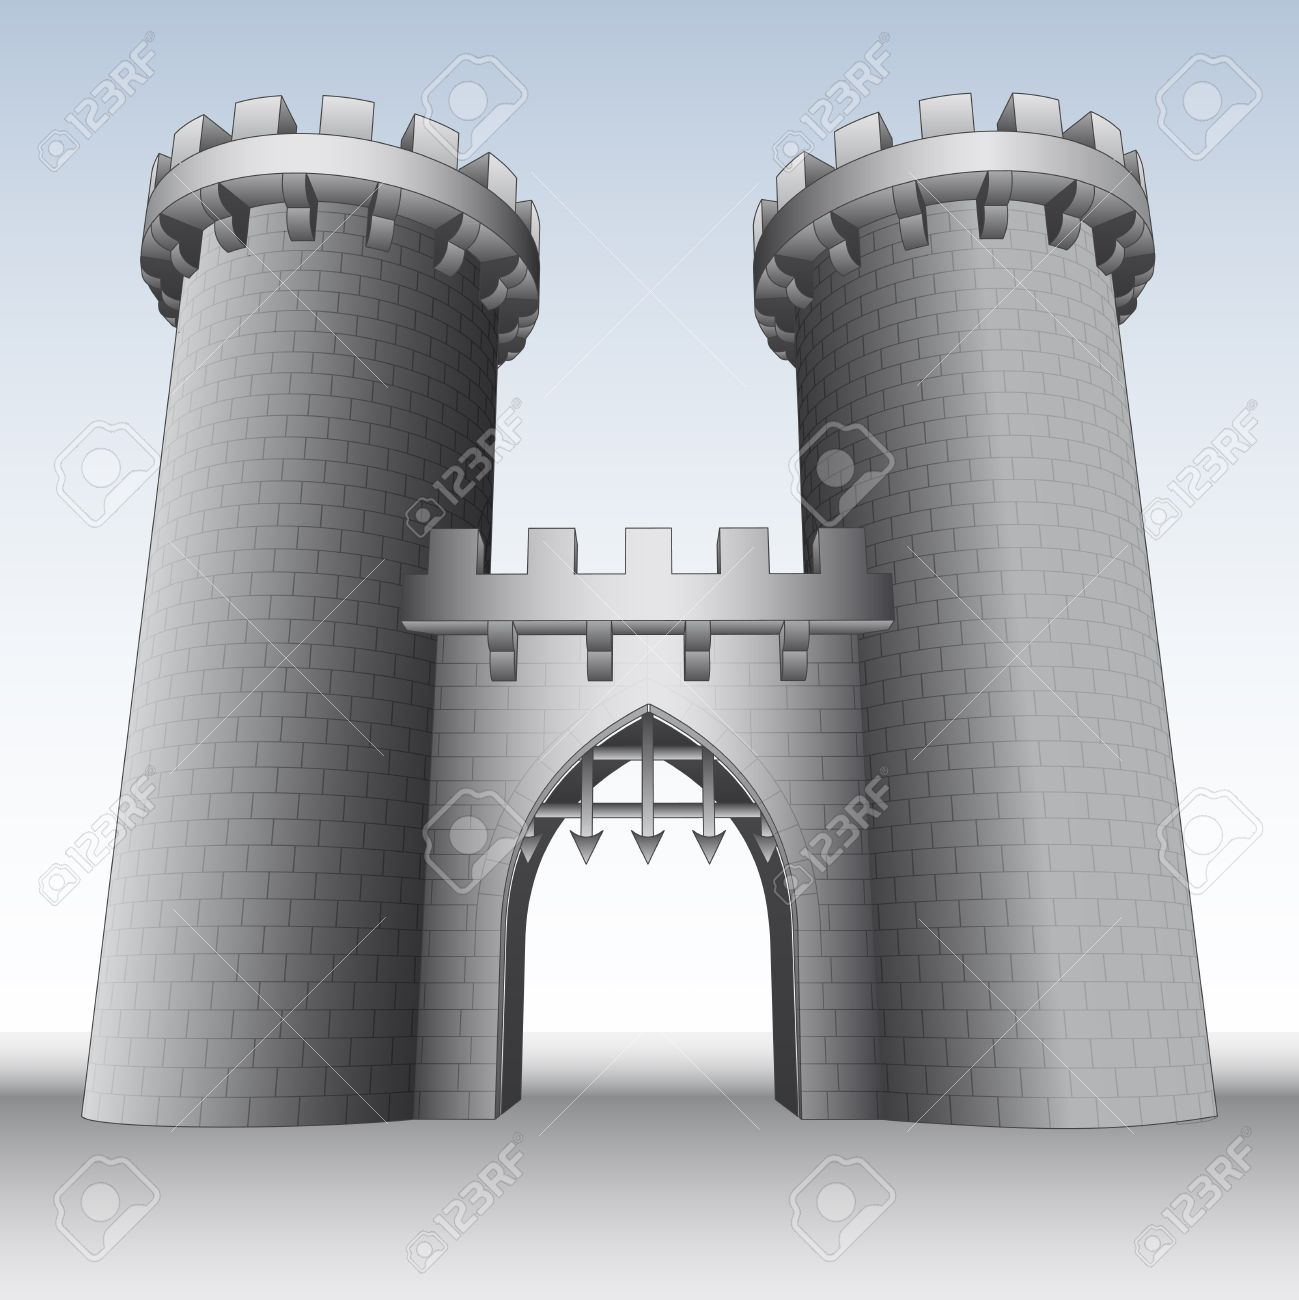 Castle Gate With Two Towers And Sky Illustration Royalty Free.